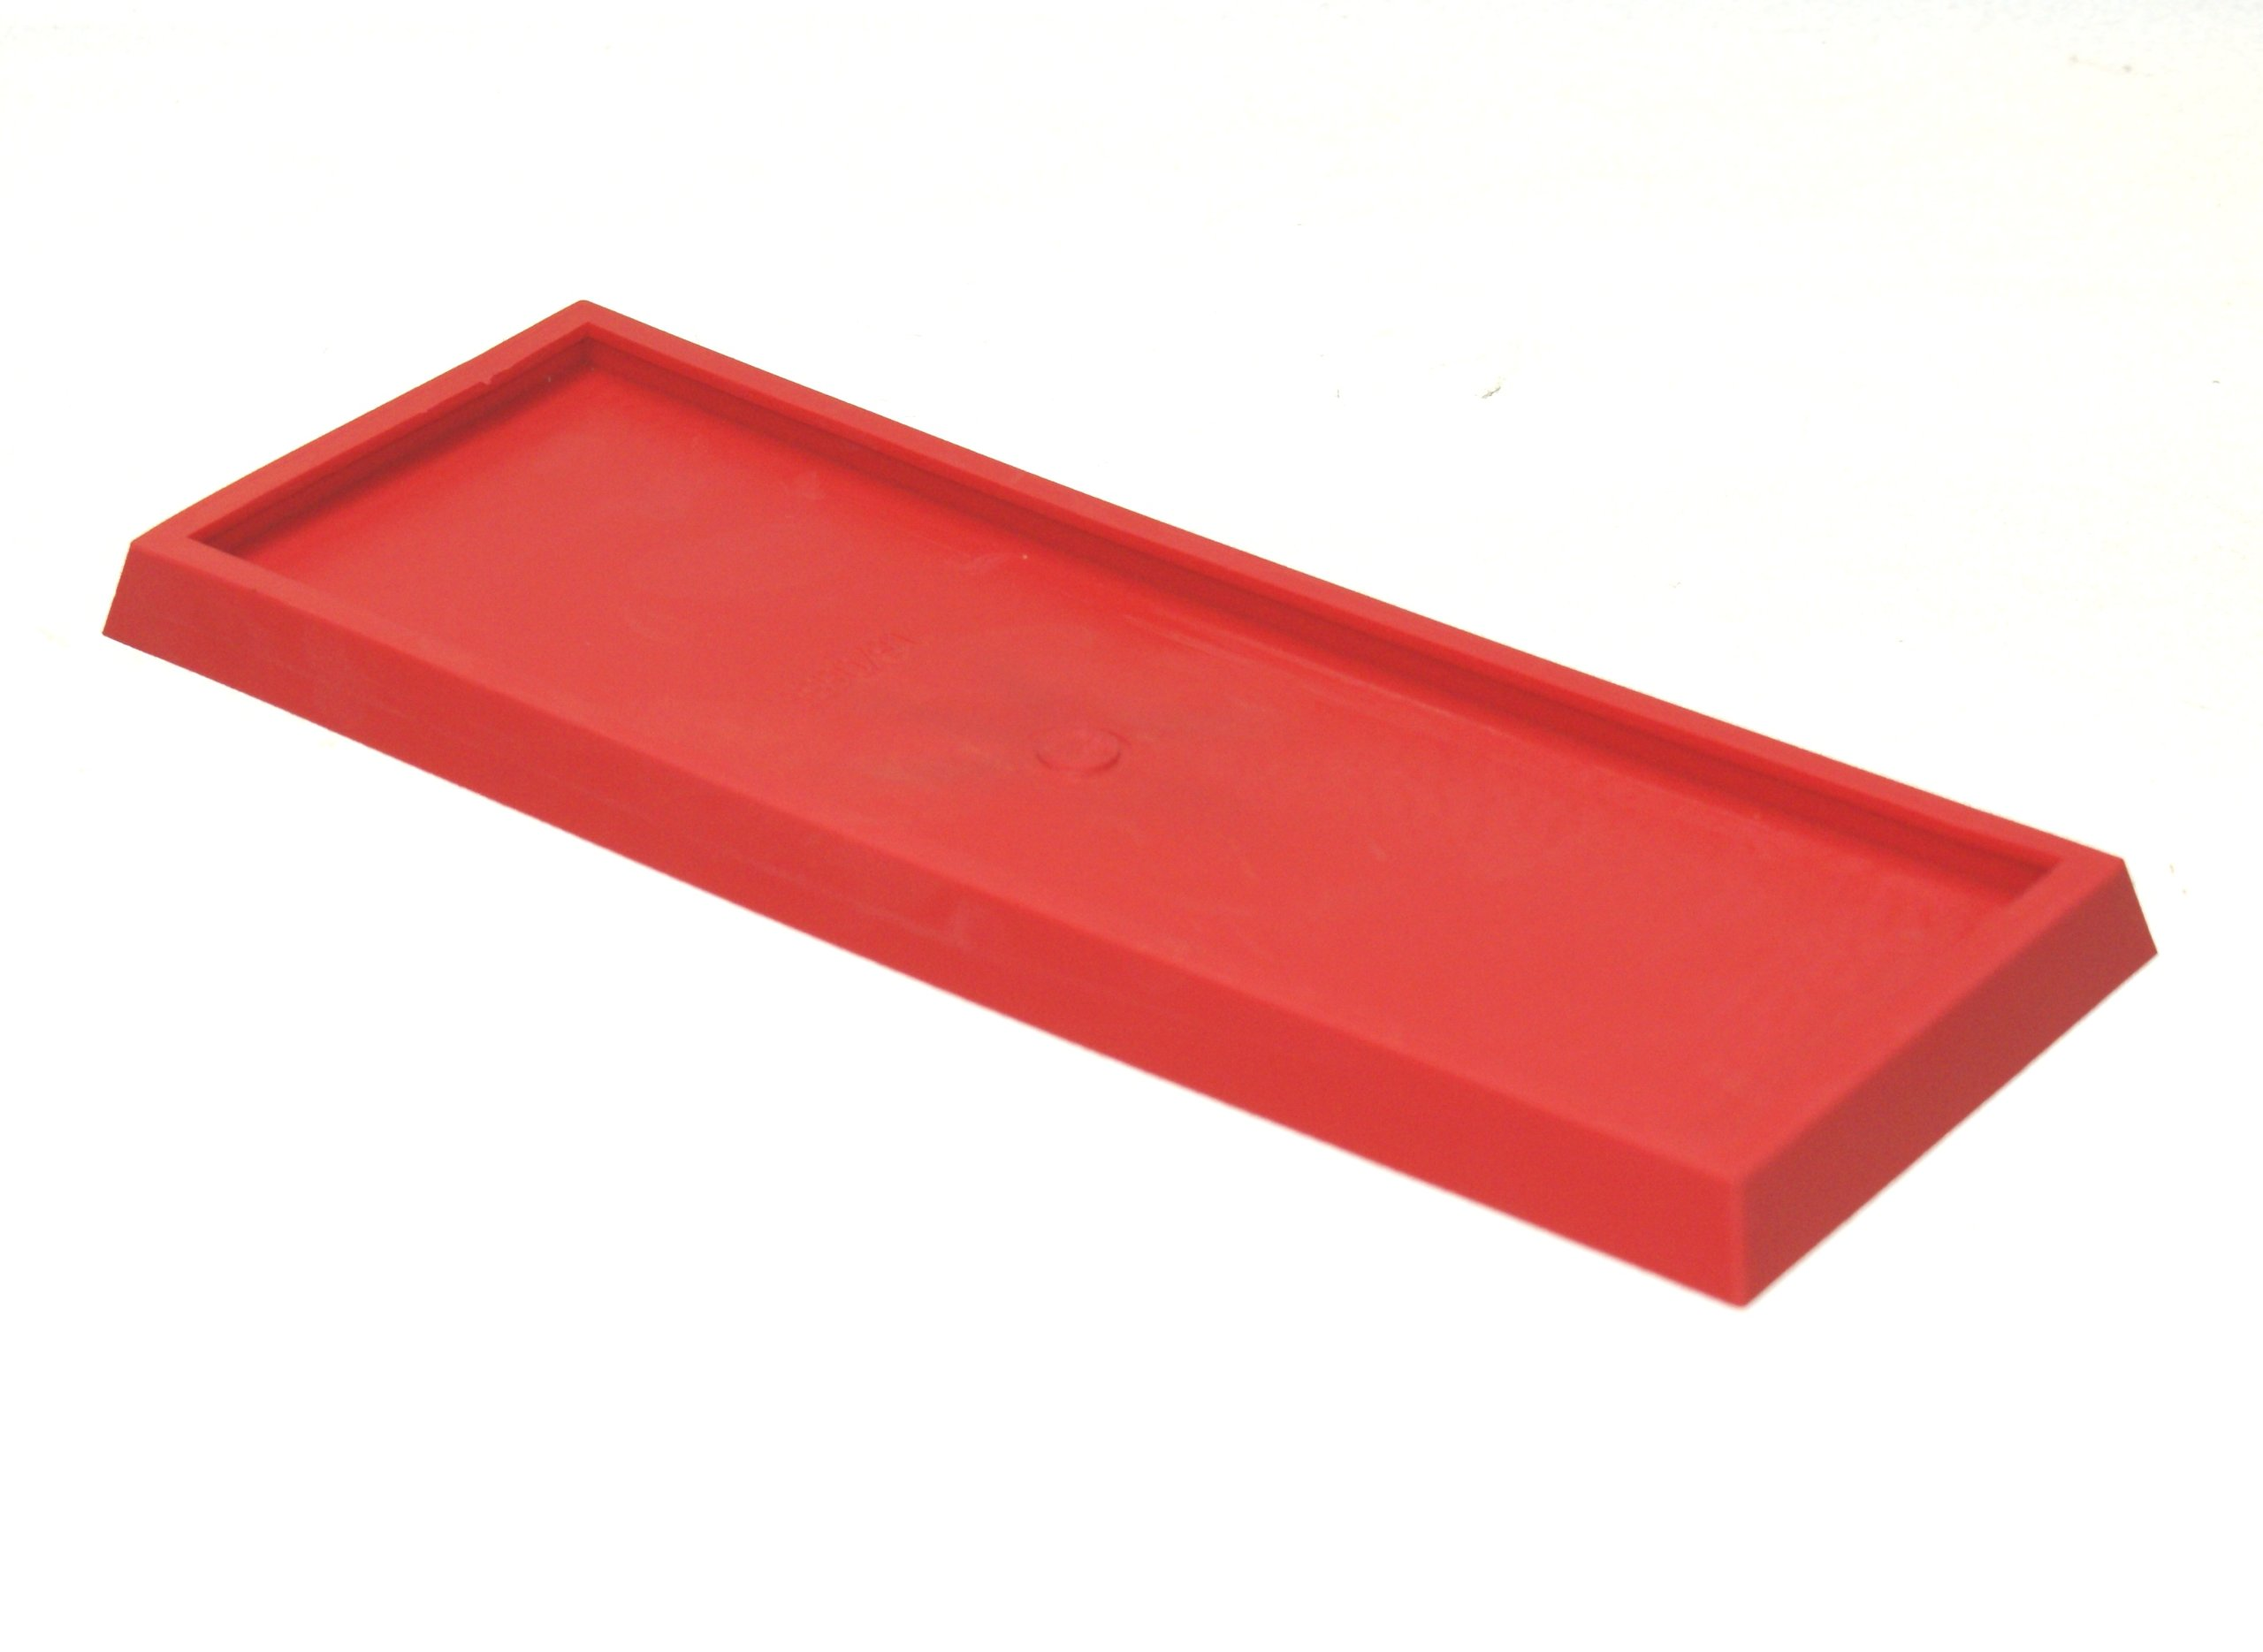 Russo Trading Co GFSFP RTC Smart Float System Hard Replacement Smart Float Pad, Red